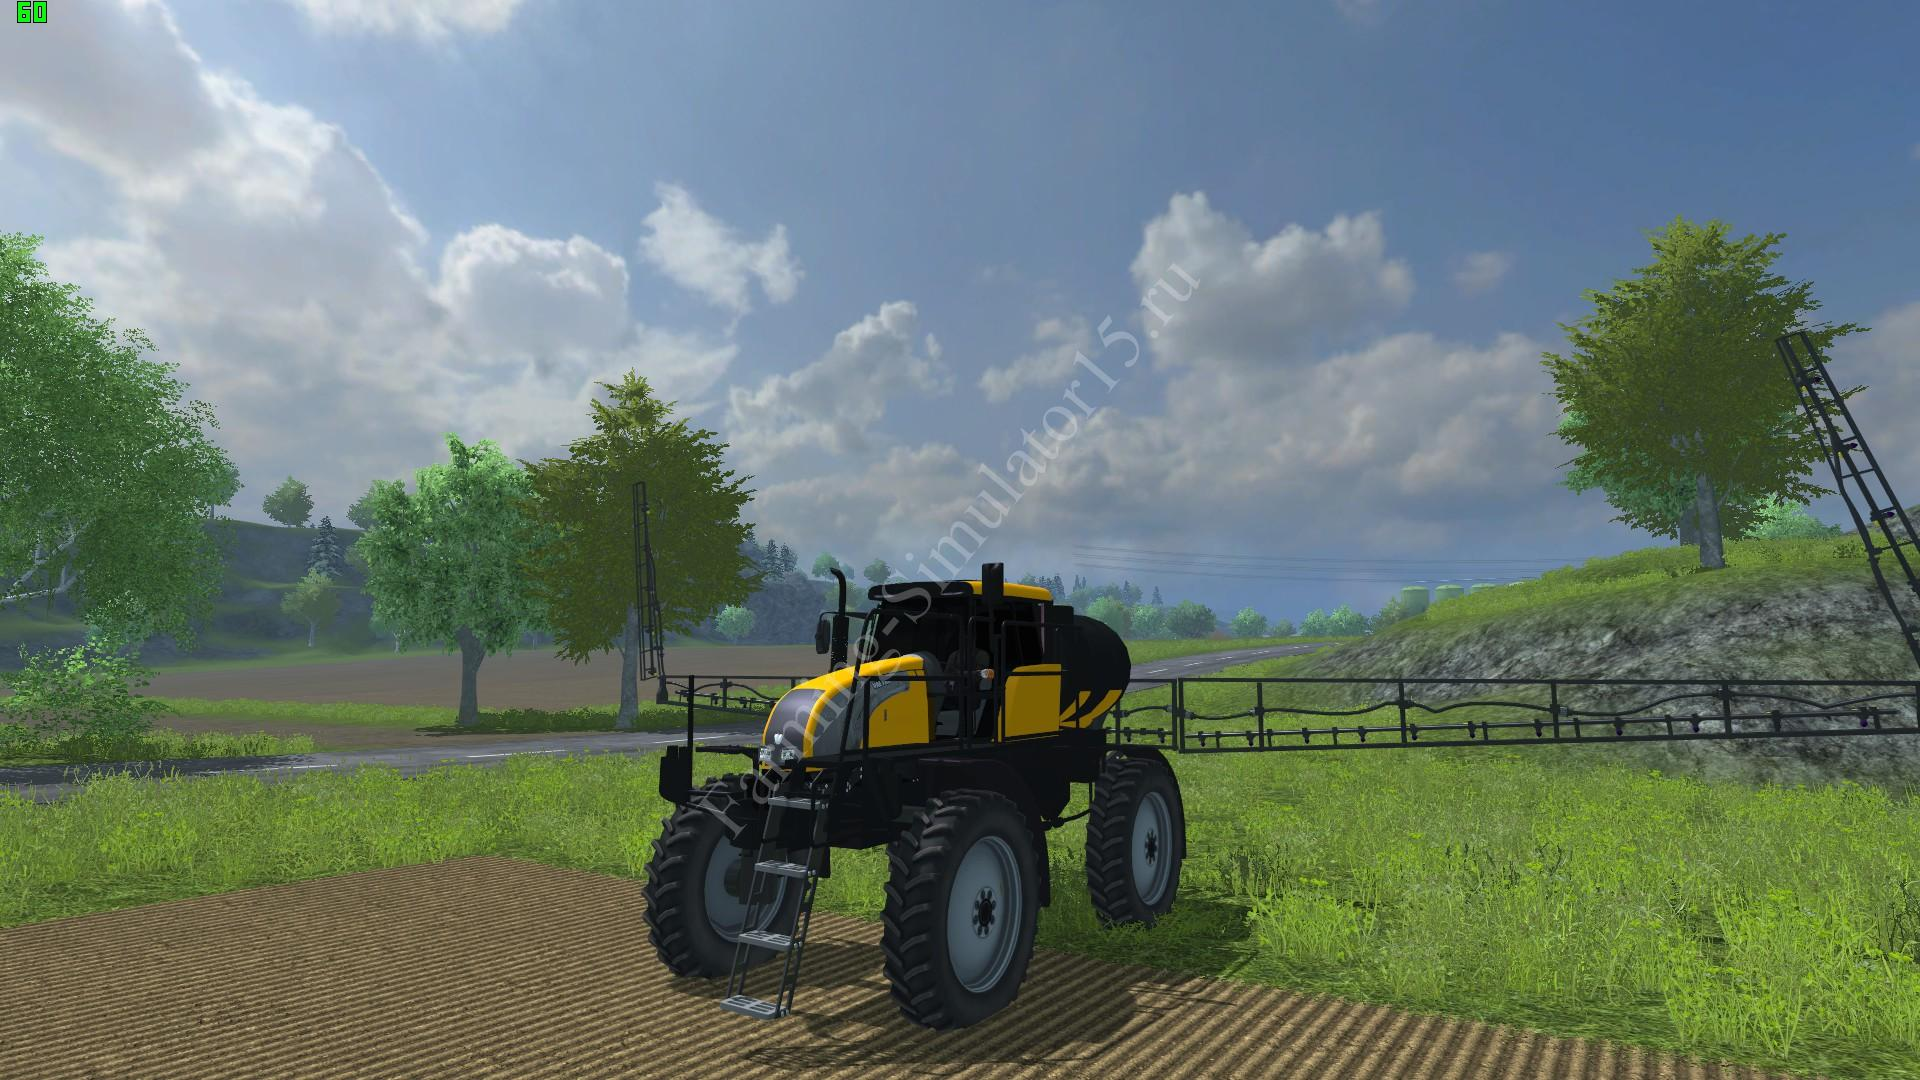 Видео мод опрыскиватель Valtra BS 3020H v 1.0 Farming Simulator 2013, Farming Simulator 13